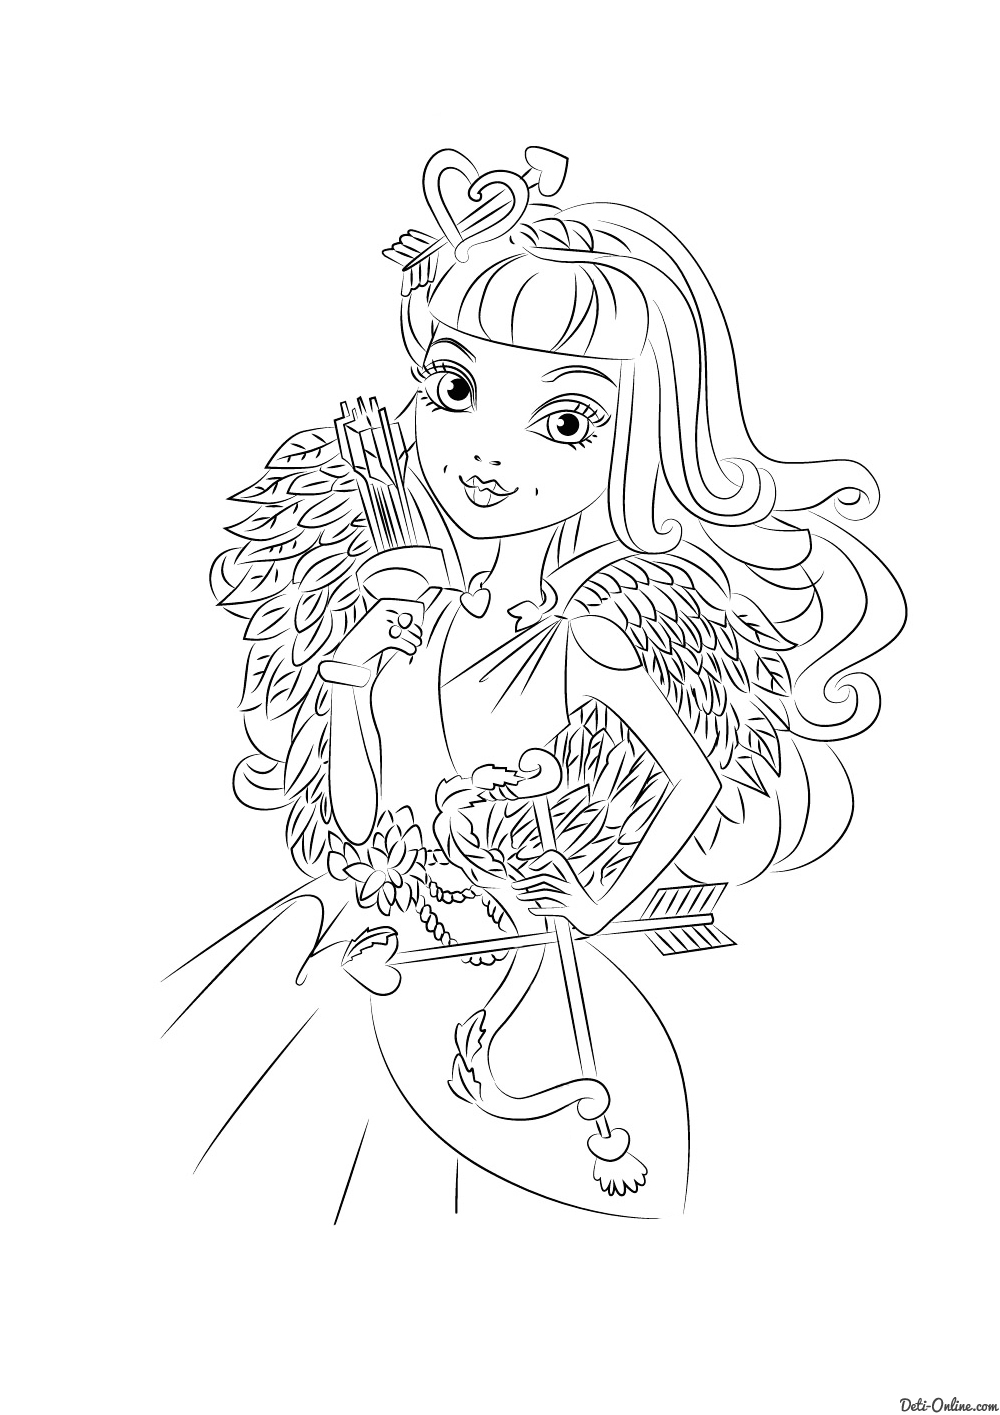 lisa frank coloring pages - 2629